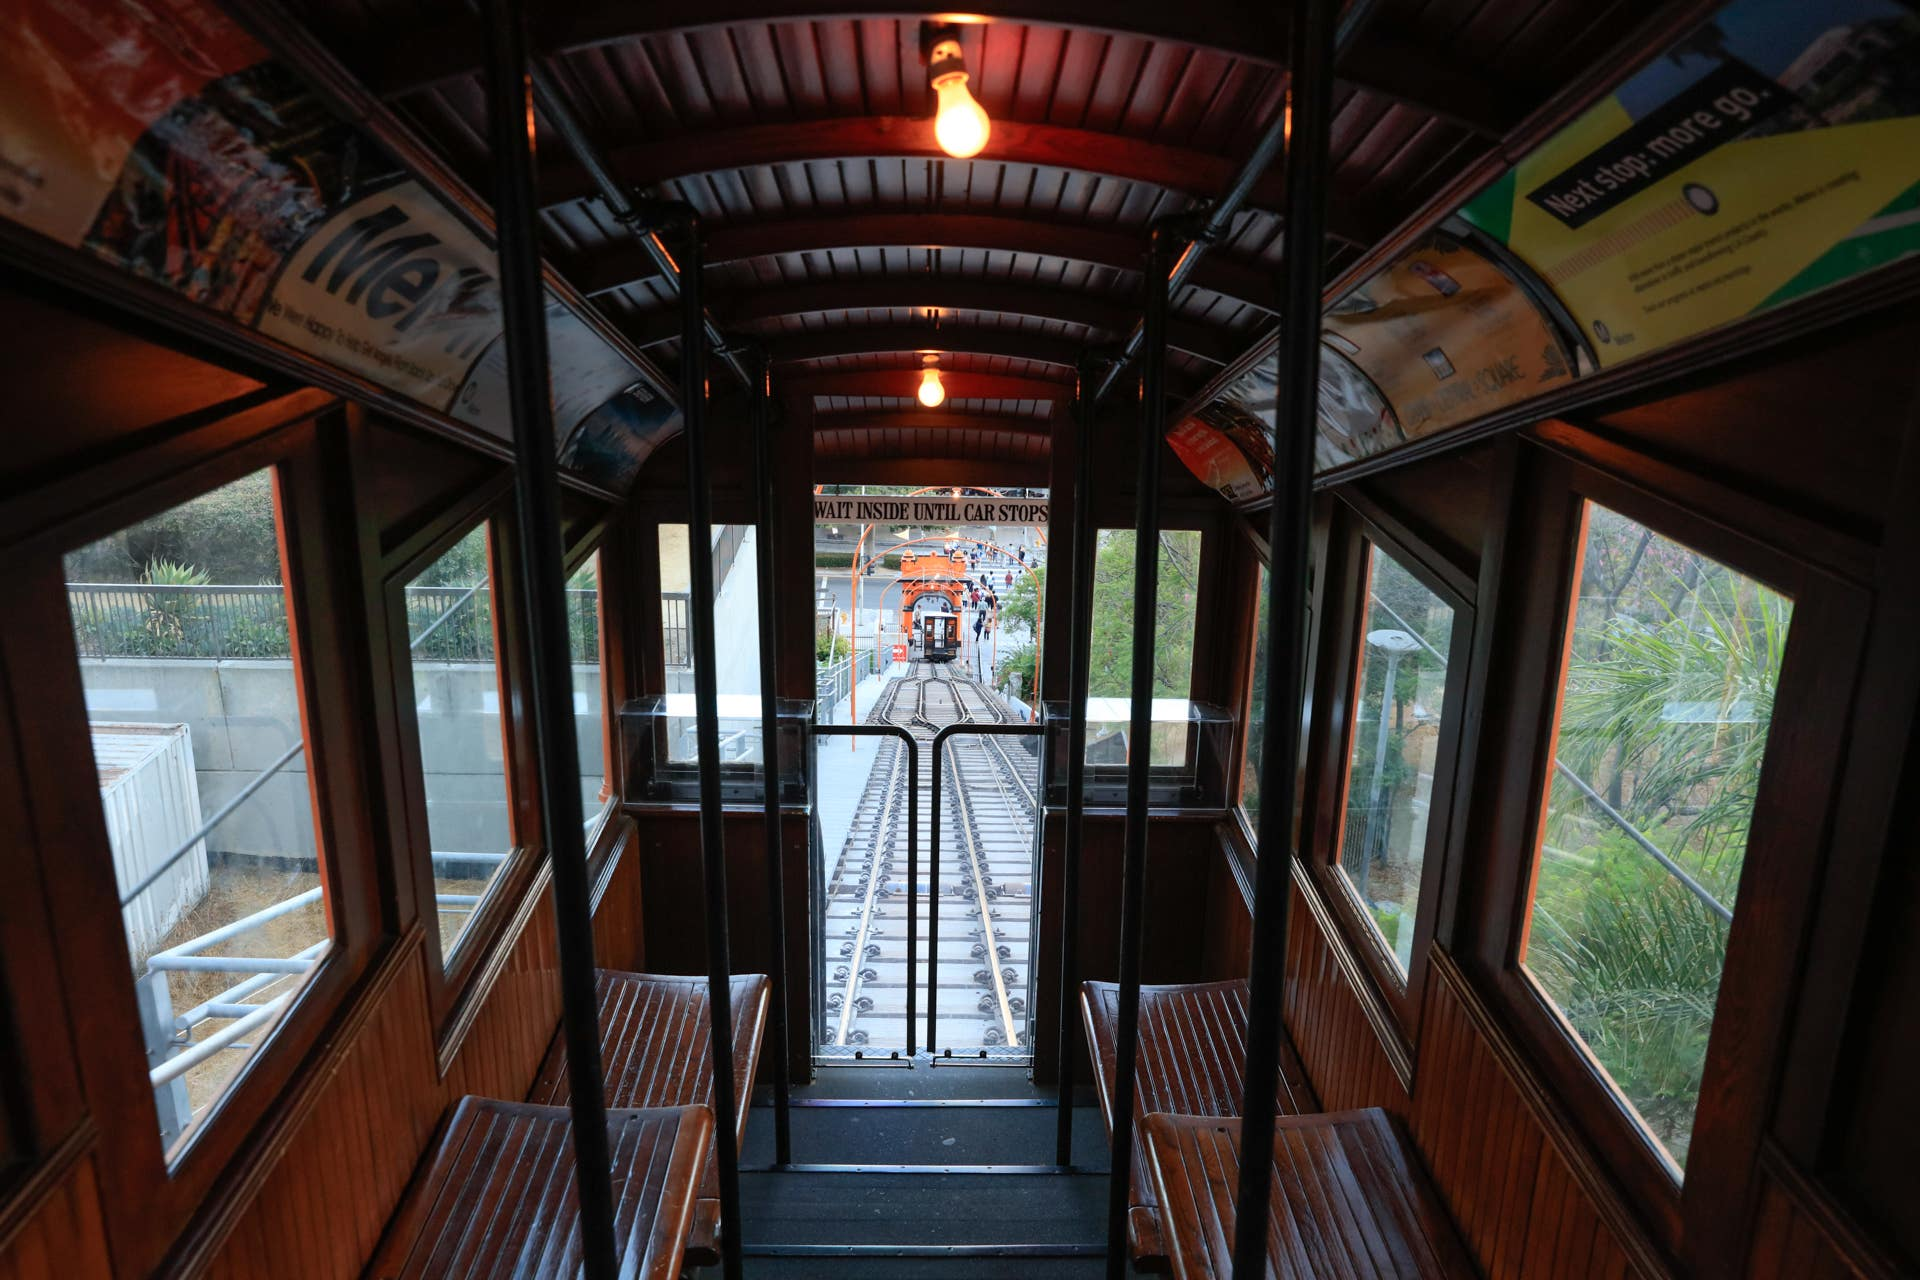 Angels Flight Railway car interior